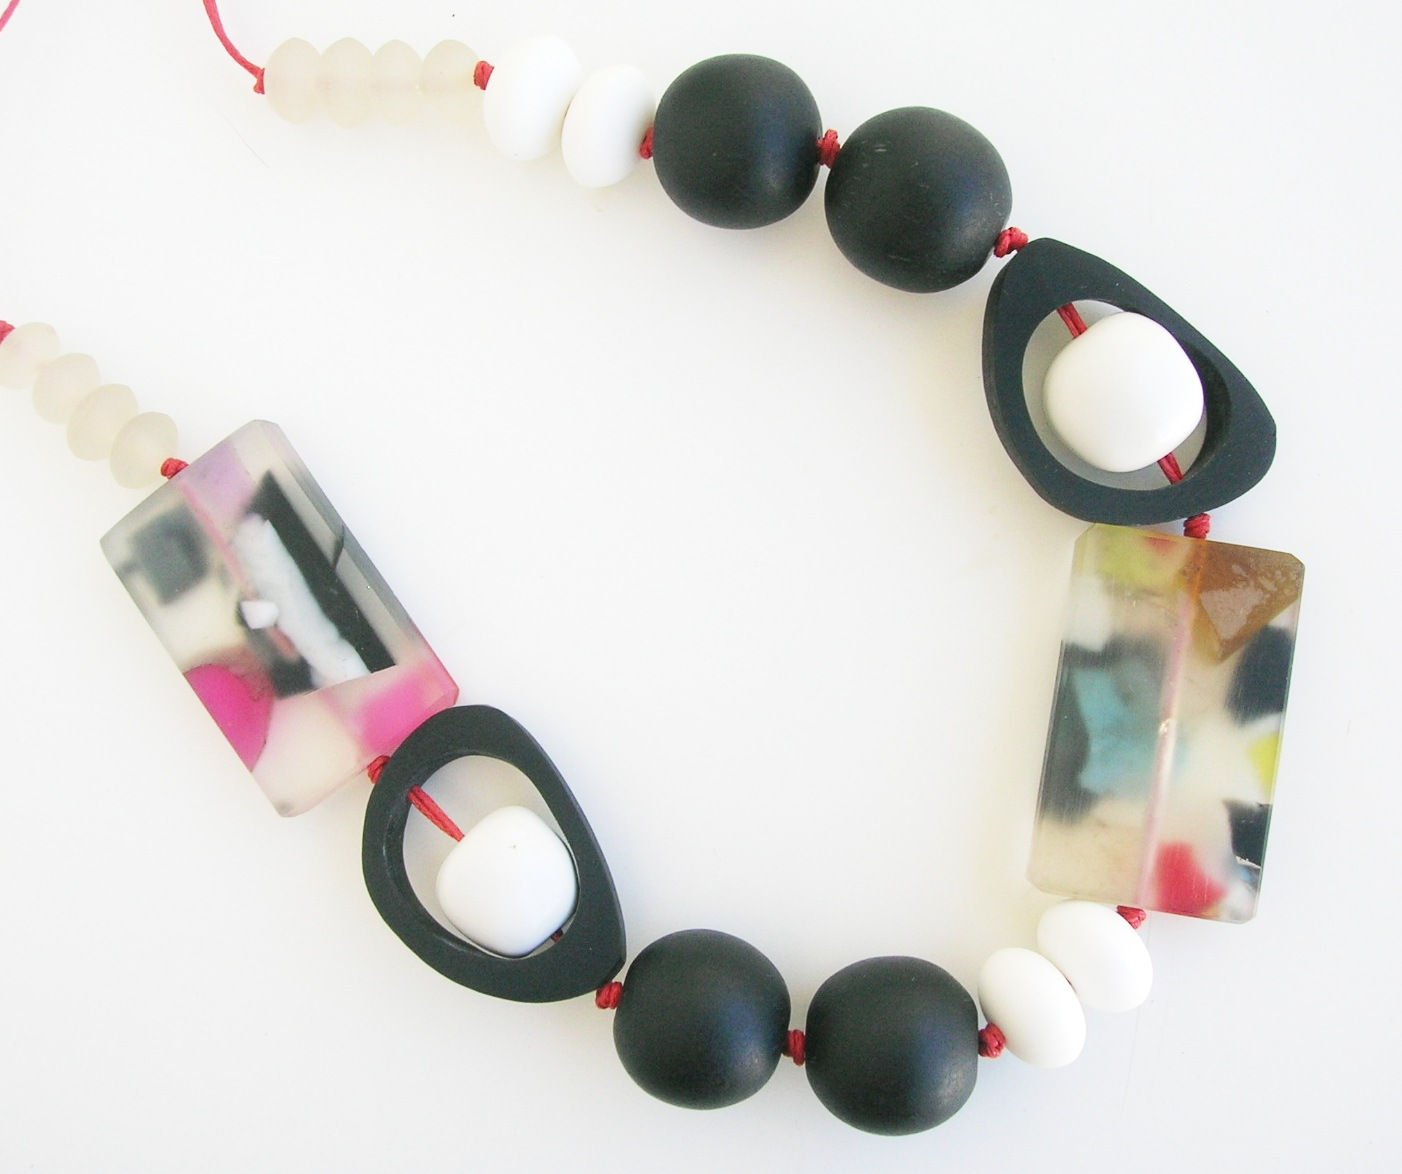 liquorice%2Bice%2Bsurprise%2Bnecklace We'll battle wits over esoterica large and small, past and present.